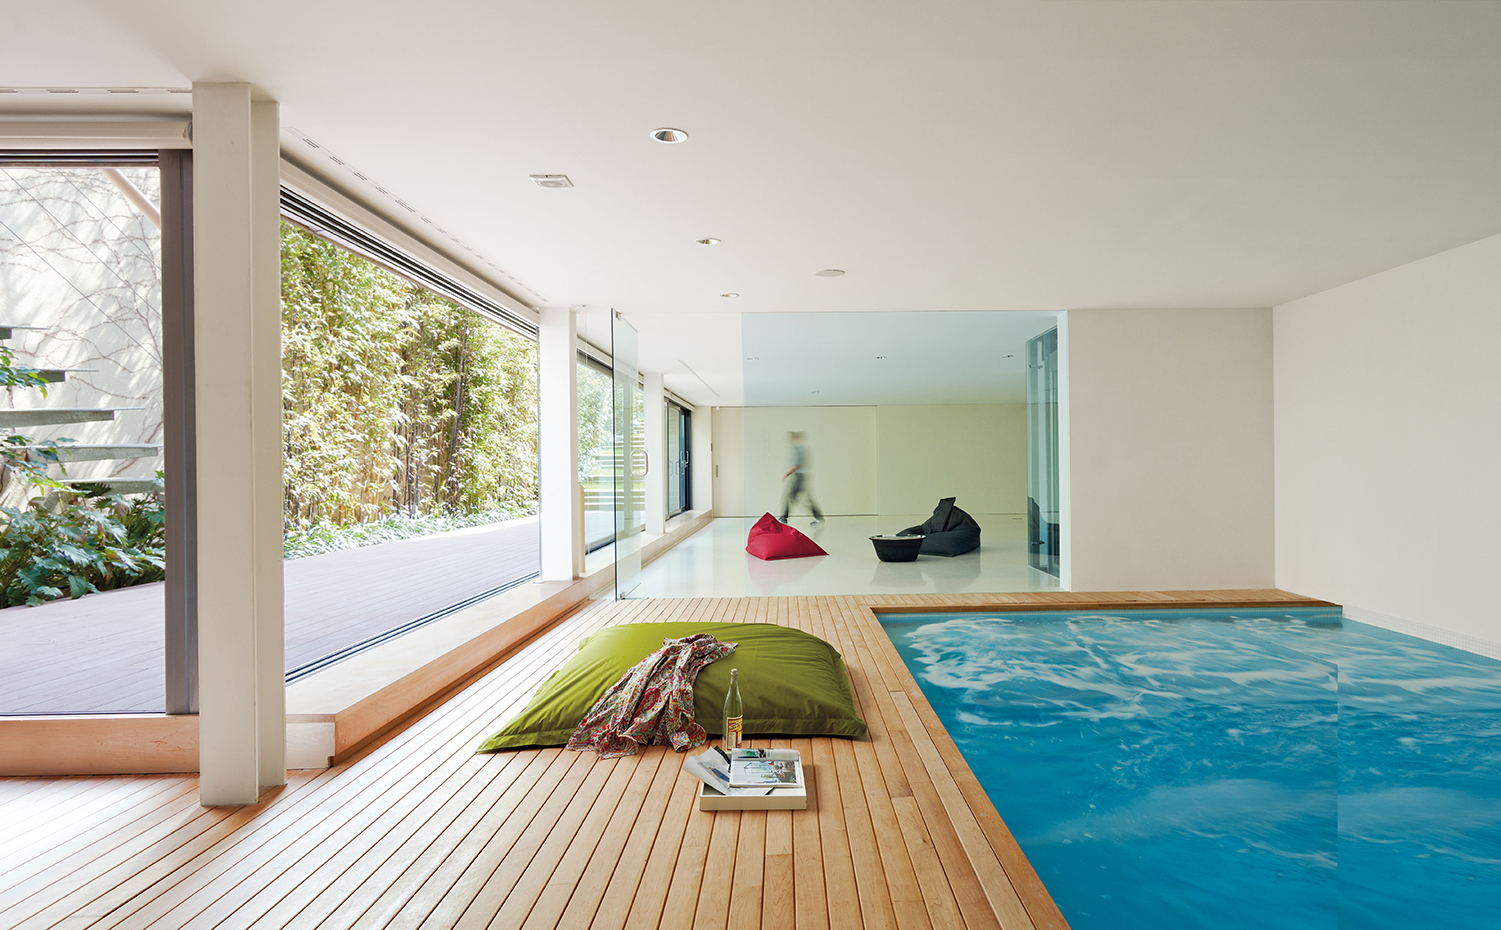 10 piscinas de interior alucinantes for Piscina interior